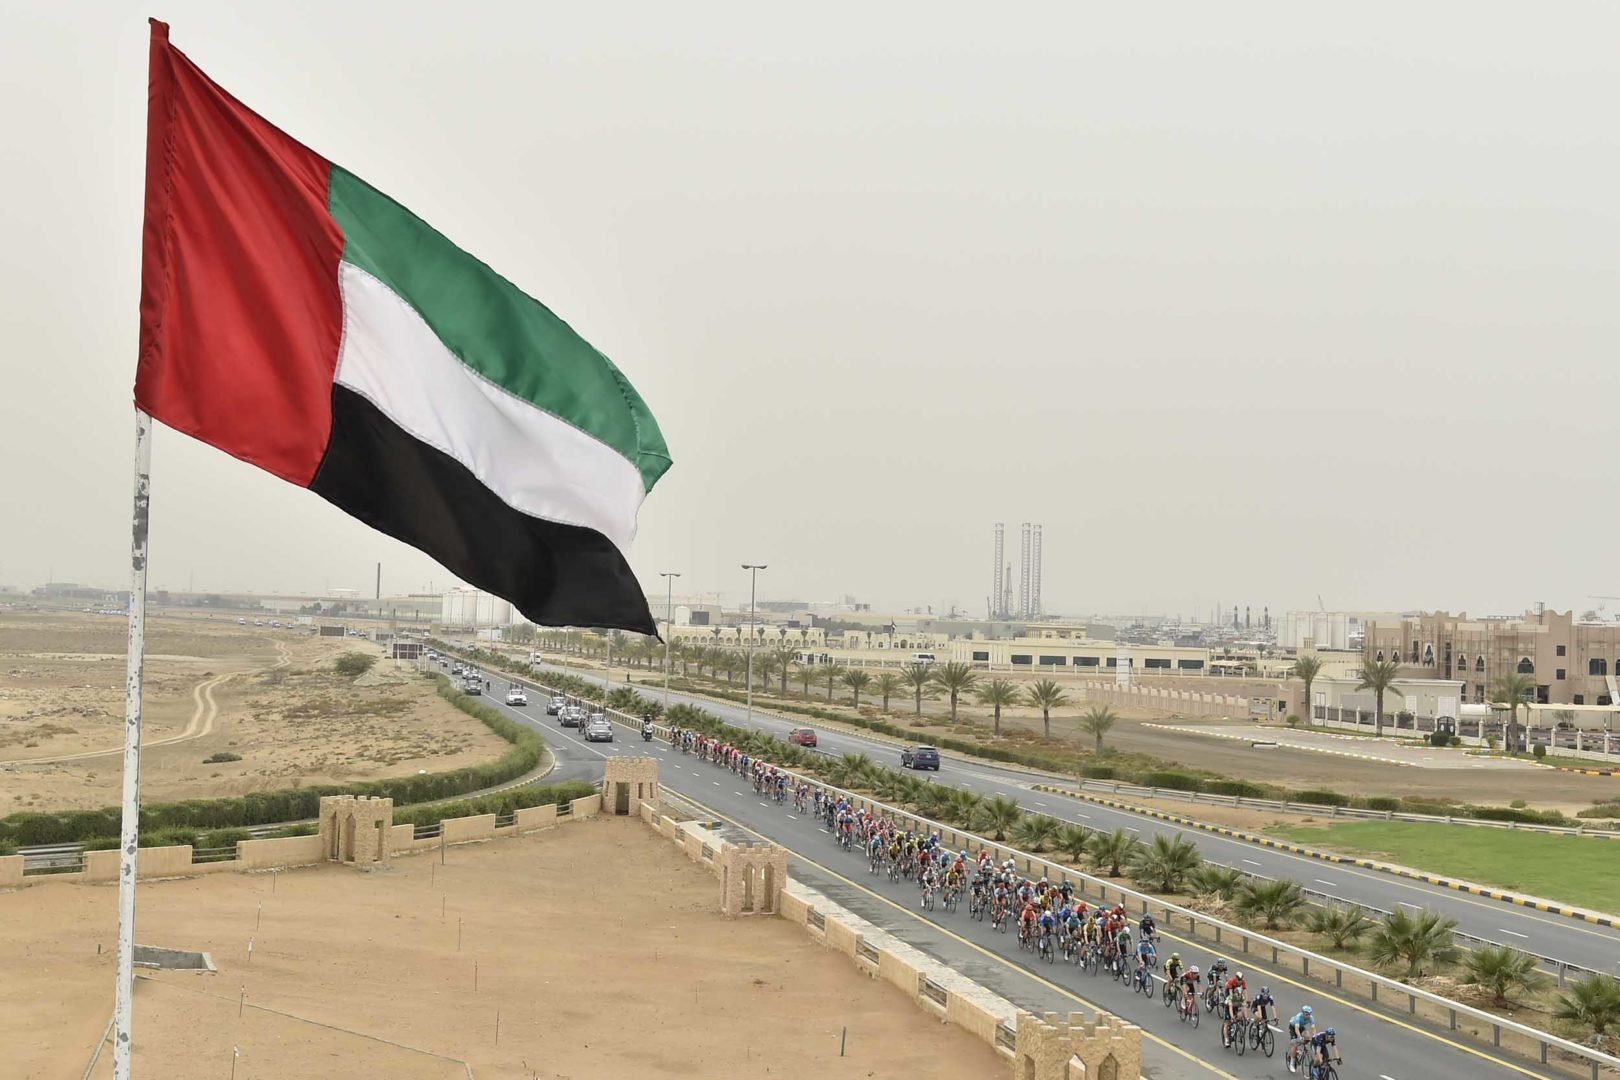 Foto LaPresse - Fabio Ferrari 01 Marzo 2019 Dubai (Emirati Arabi Uniti) Sport Ciclismo UAE Tour 2019 - Tappa 6 - da Ajman a Jebel Jais - 180 km Nella foto: durante la tappa.Photo LaPresse - Fabio Ferrari March 01, 2019 Dubai (United Arab Emirates) Sport Cycling UAE Tour 2019 - Stage 6 - From Ajman To Jebel Jais  - 112 miles. In the pic: during the race.